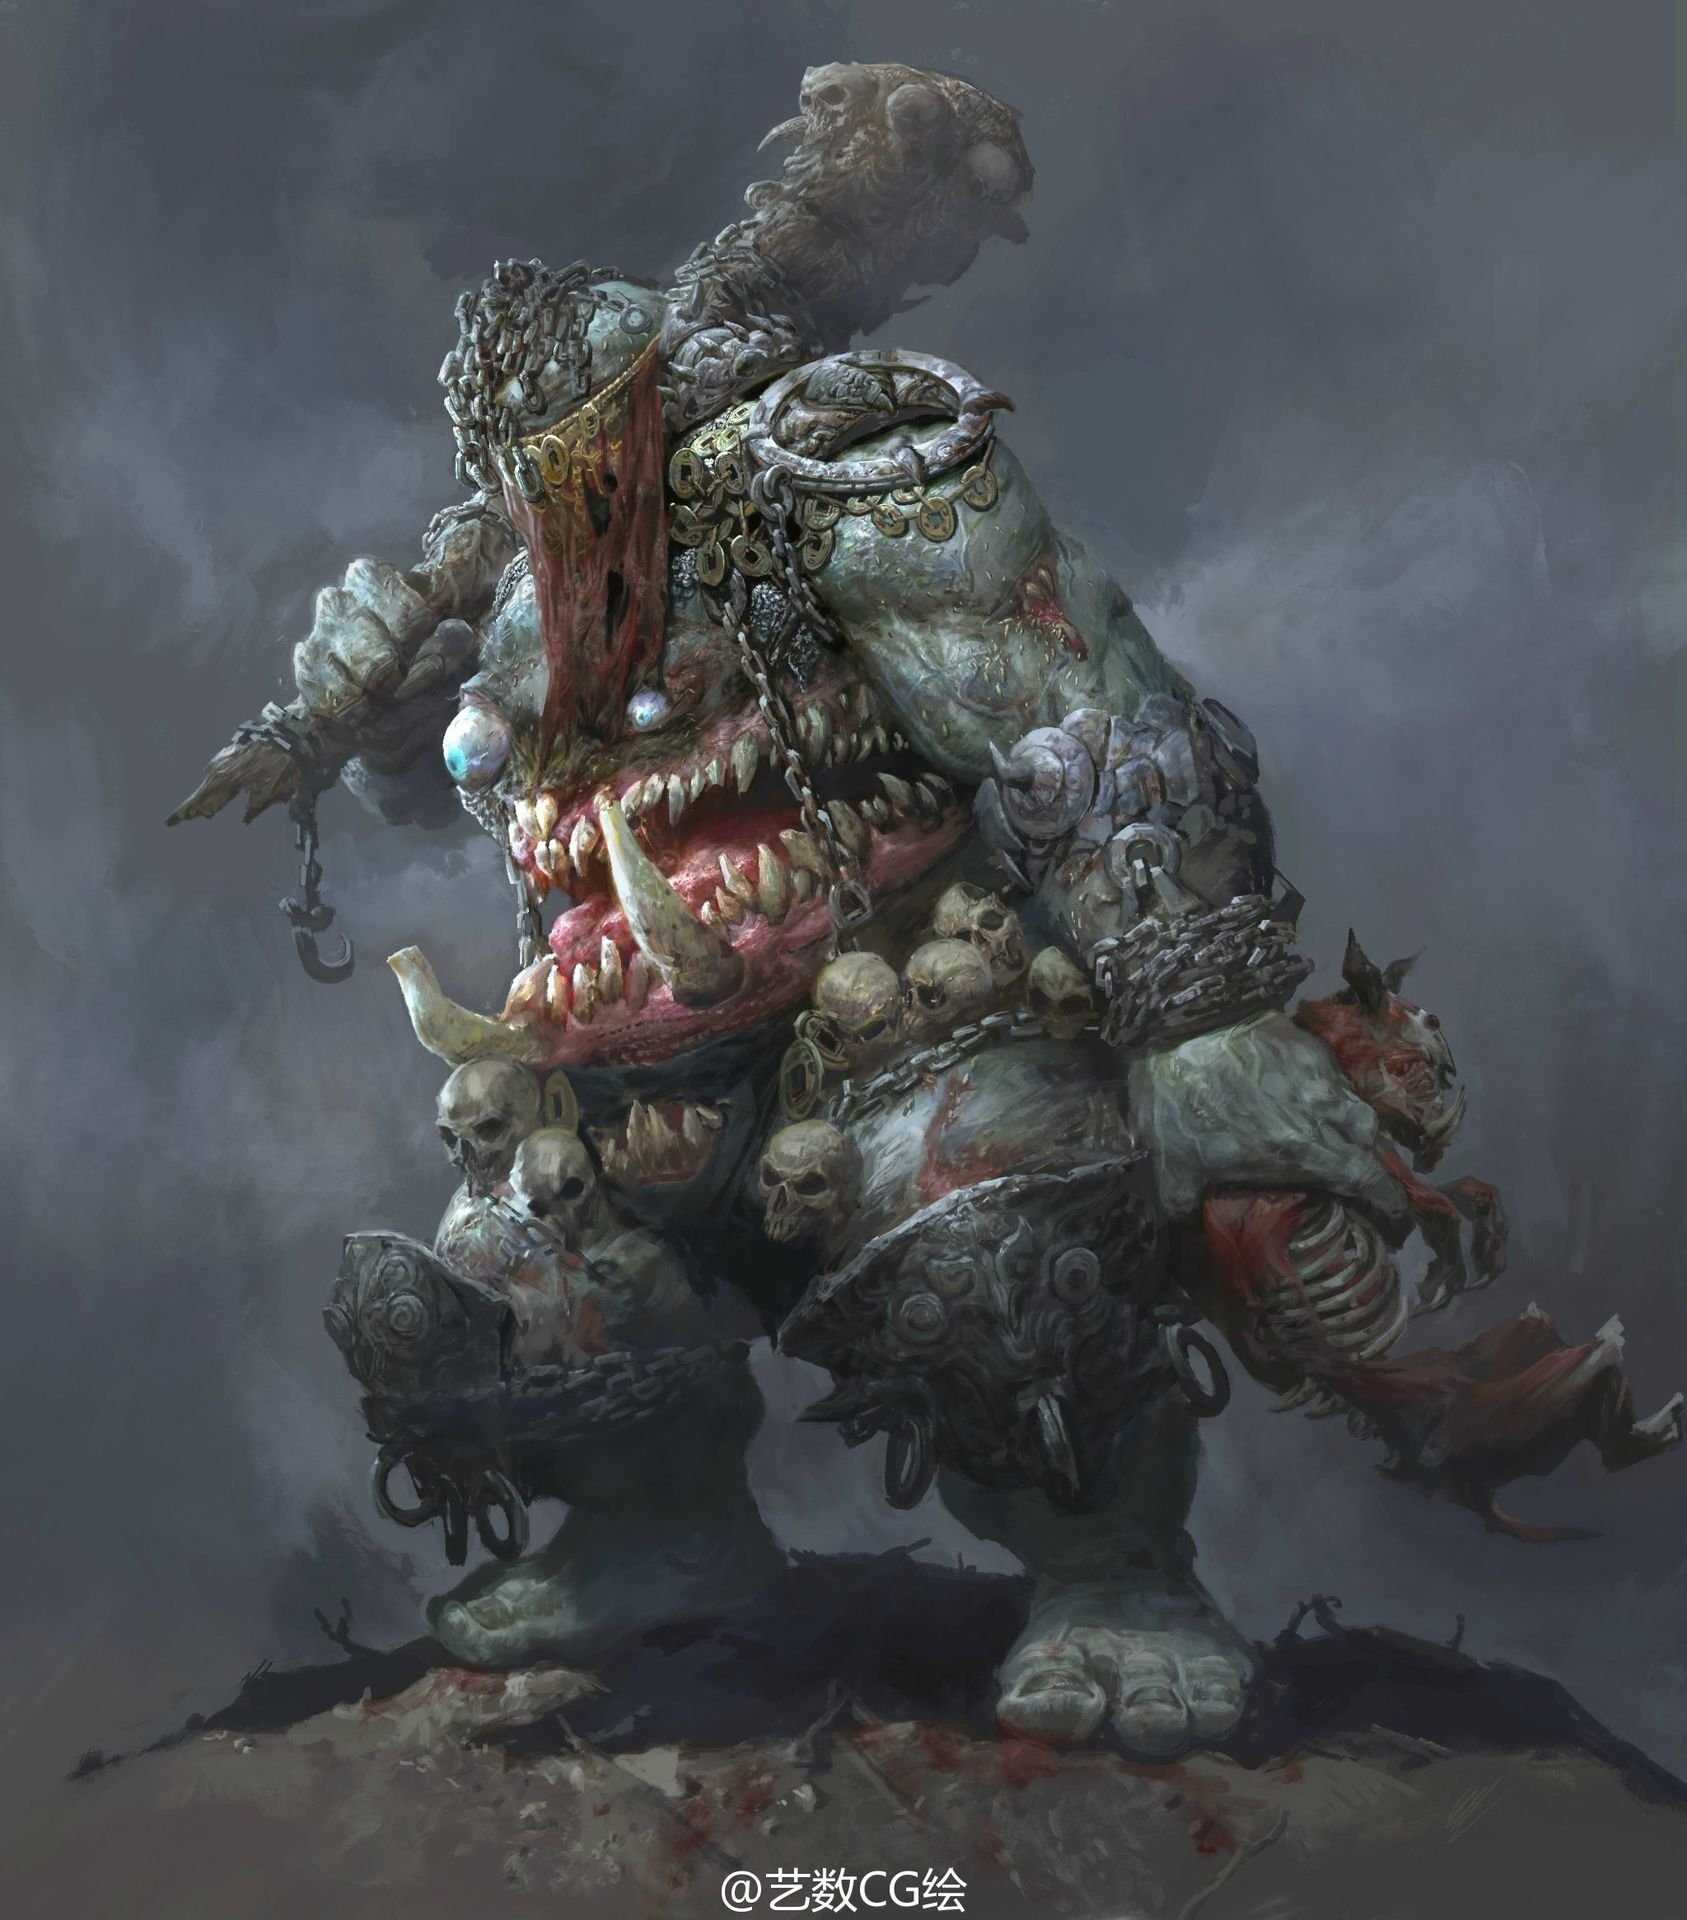 Fenghua zhong the monster